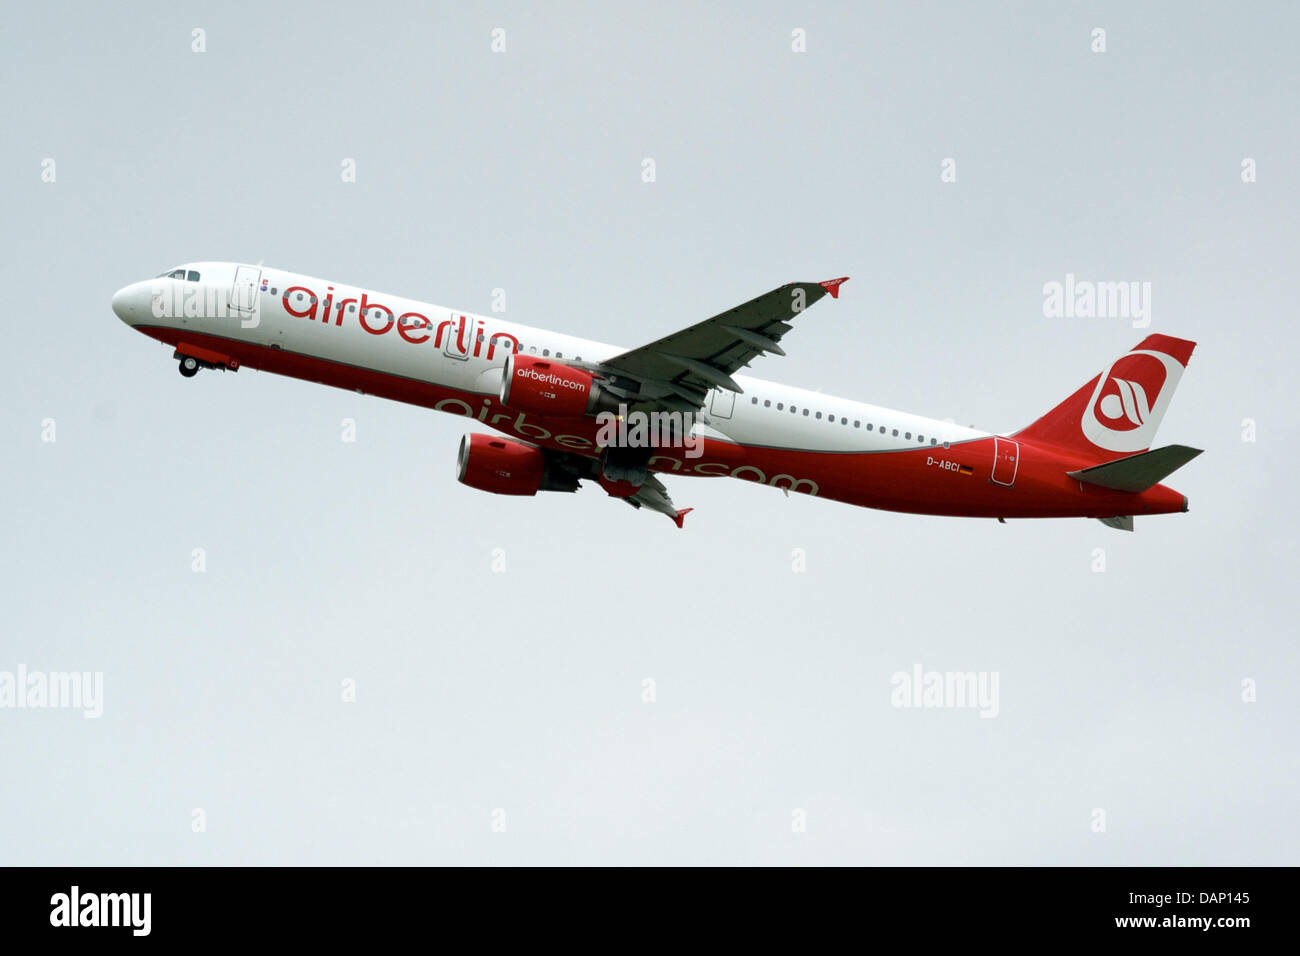 An airberlin Airbus A320 takes off from Leipzig/Halle Airport inSchkeuditz, Germany, 04 July 2013. Photo: PETERENDIG Stock Photo